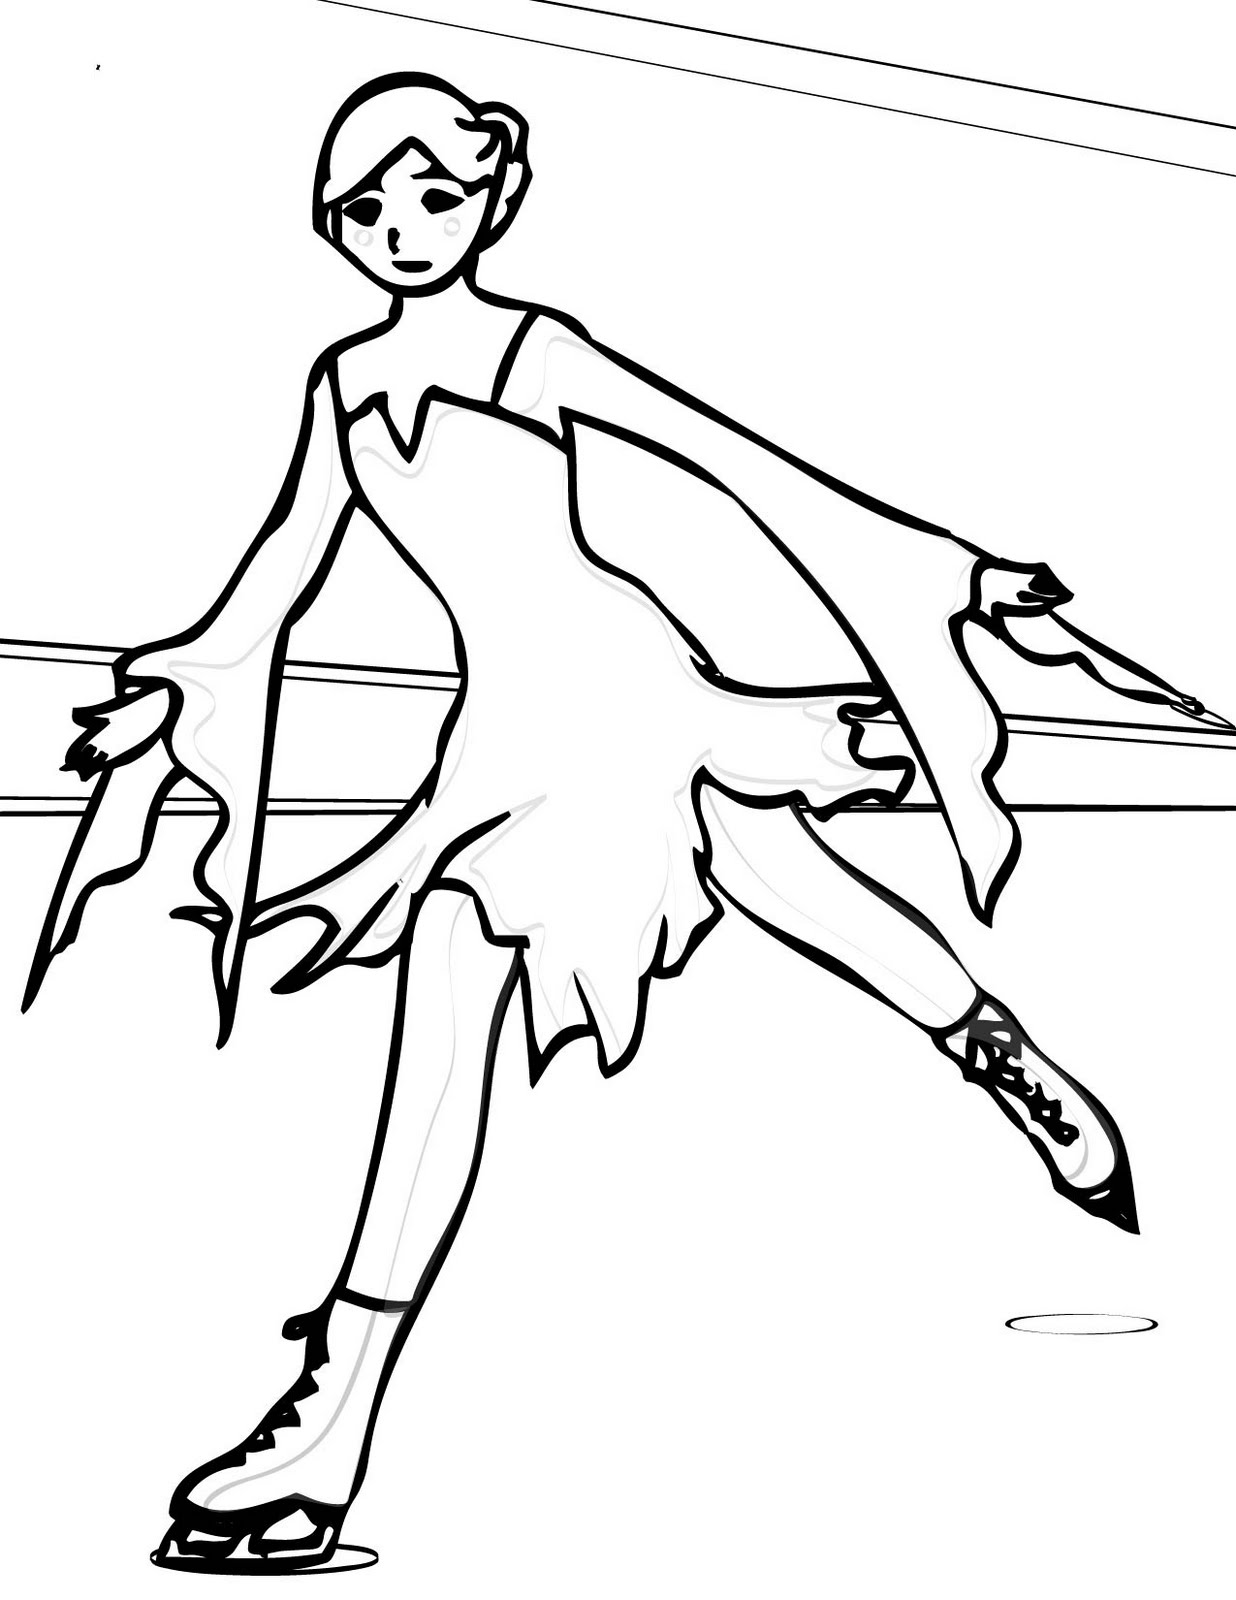 Ice Skating Coloring Pages | Coloring Pages to Print